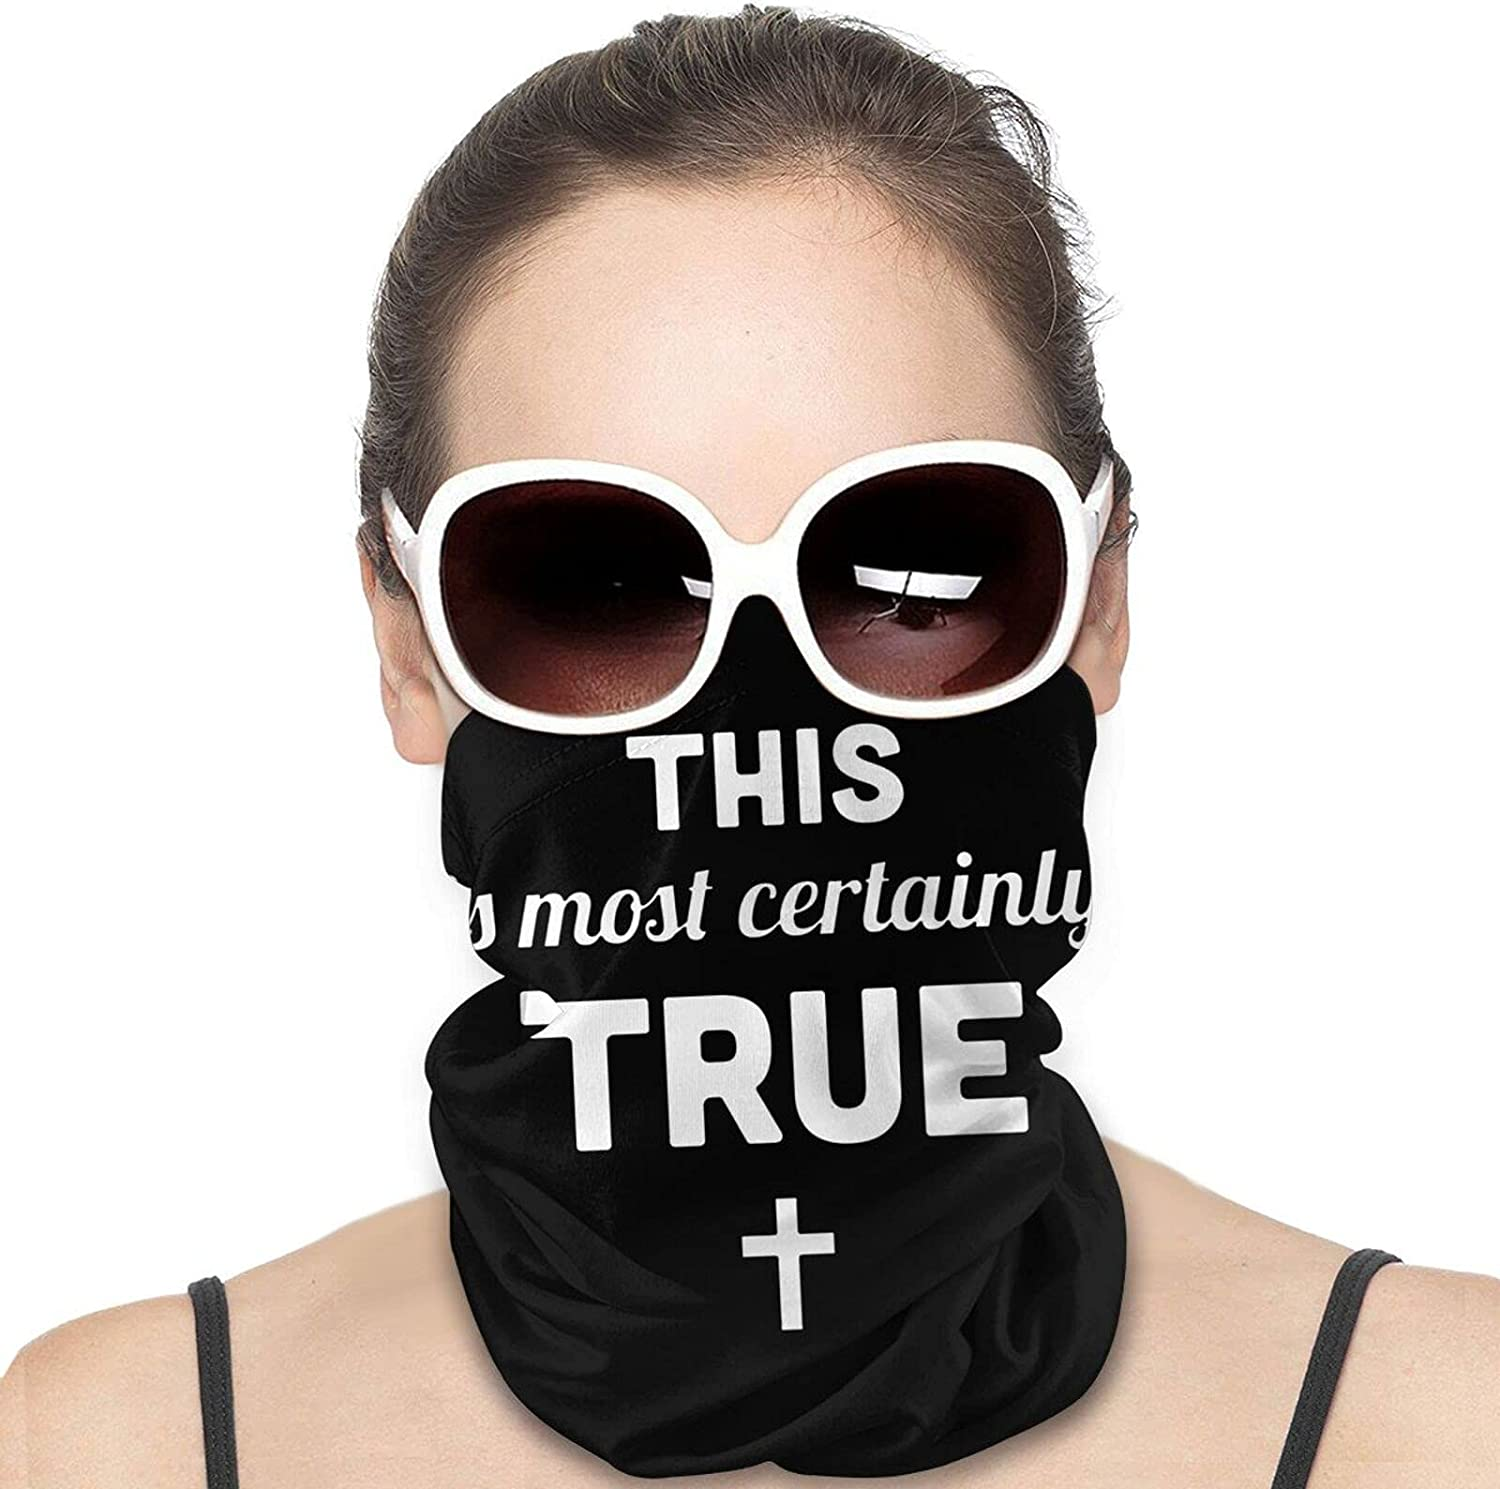 This is Most Certainly True Lutheran Church Round Neck Gaiter Bandnas Face Cover Uv Protection Prevent bask in Ice Scarf Headbands Perfect for Motorcycle Cycling Running Festival Raves Outdoors